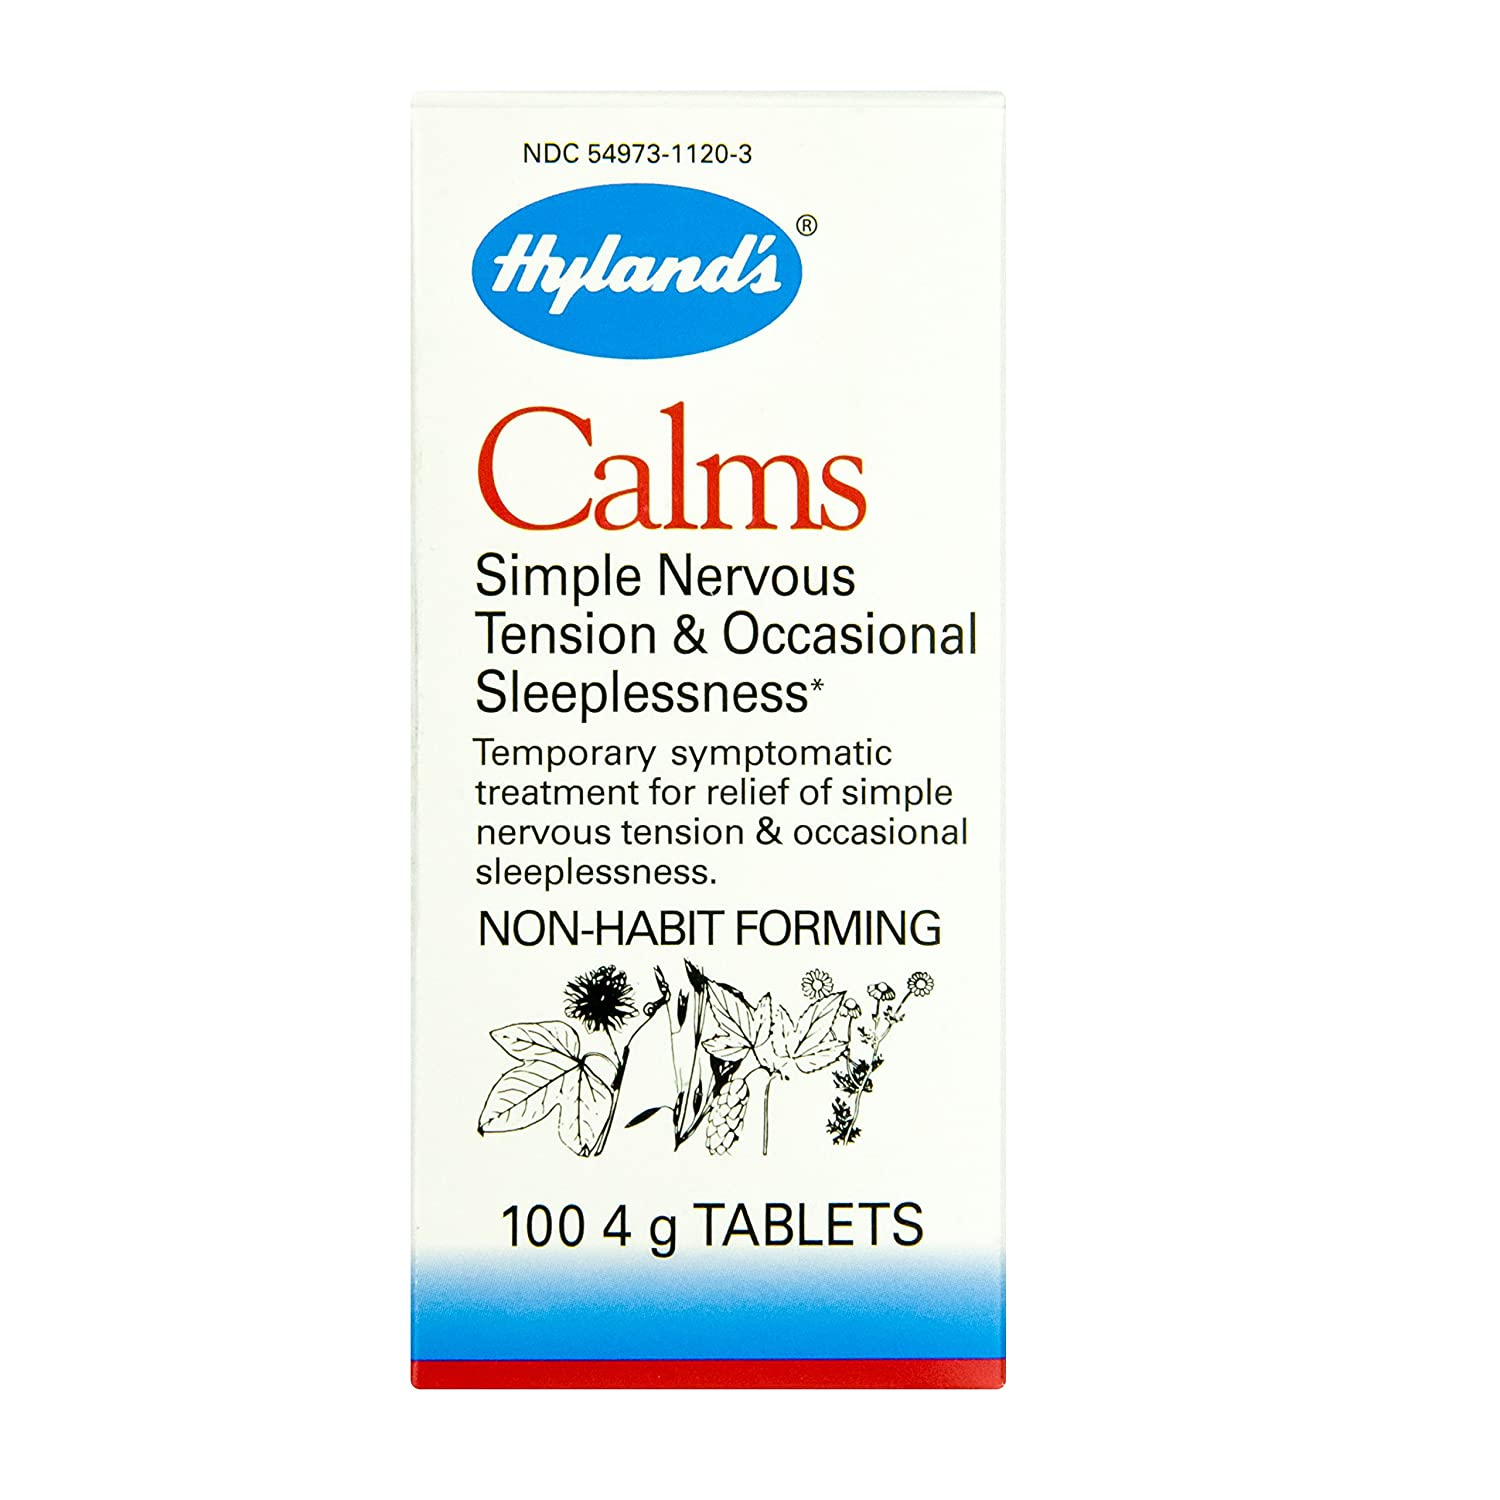 Tablets Calm: reviews, indications, instructions for use 100